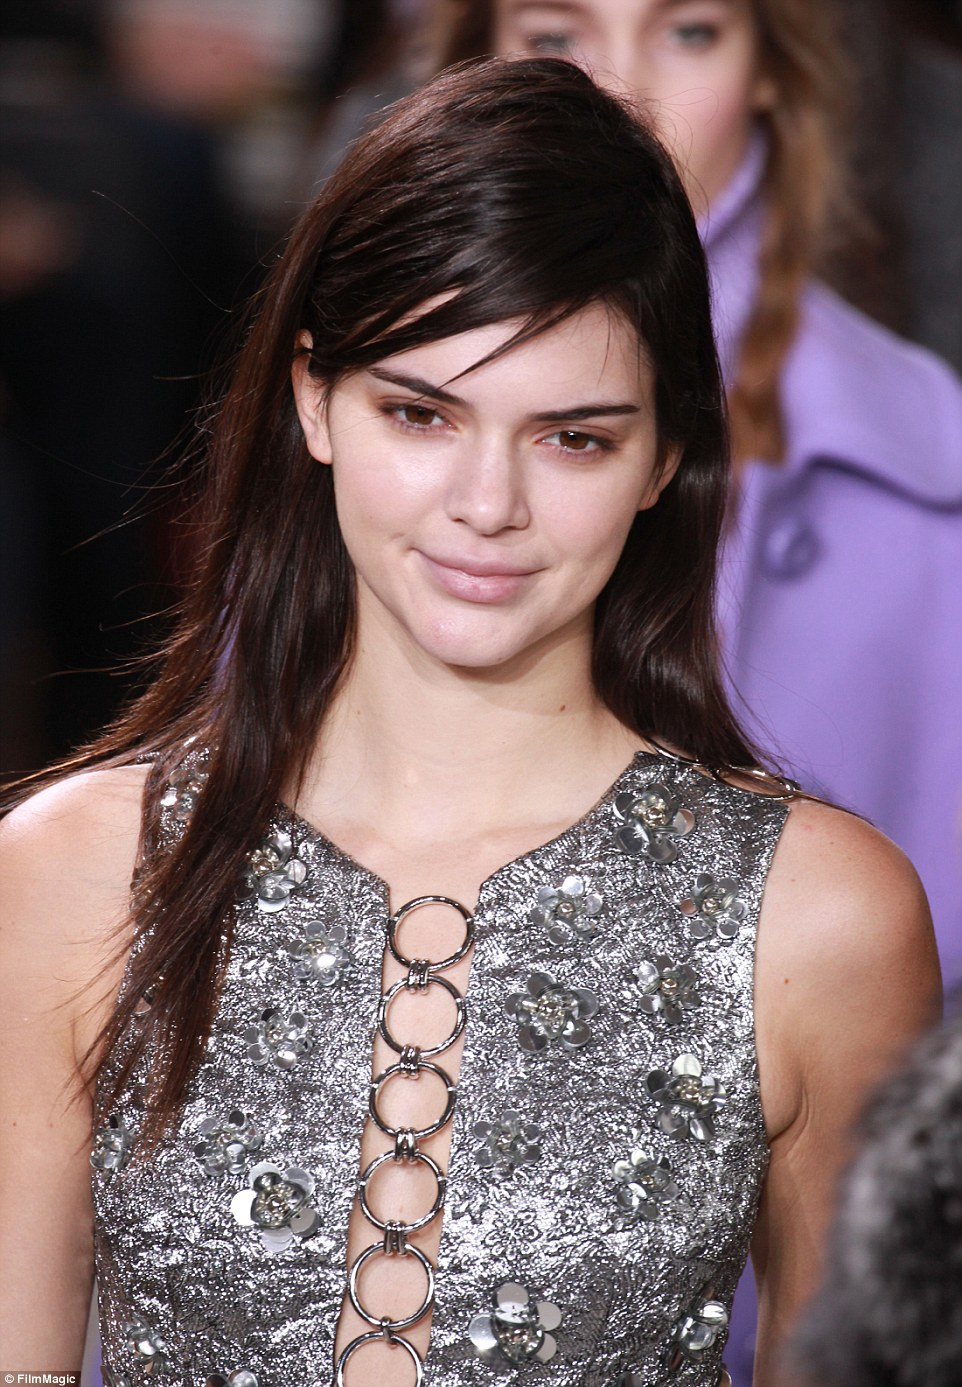 Kendall Jenner proved she is one of the most daring catwalk stars on Wednesday